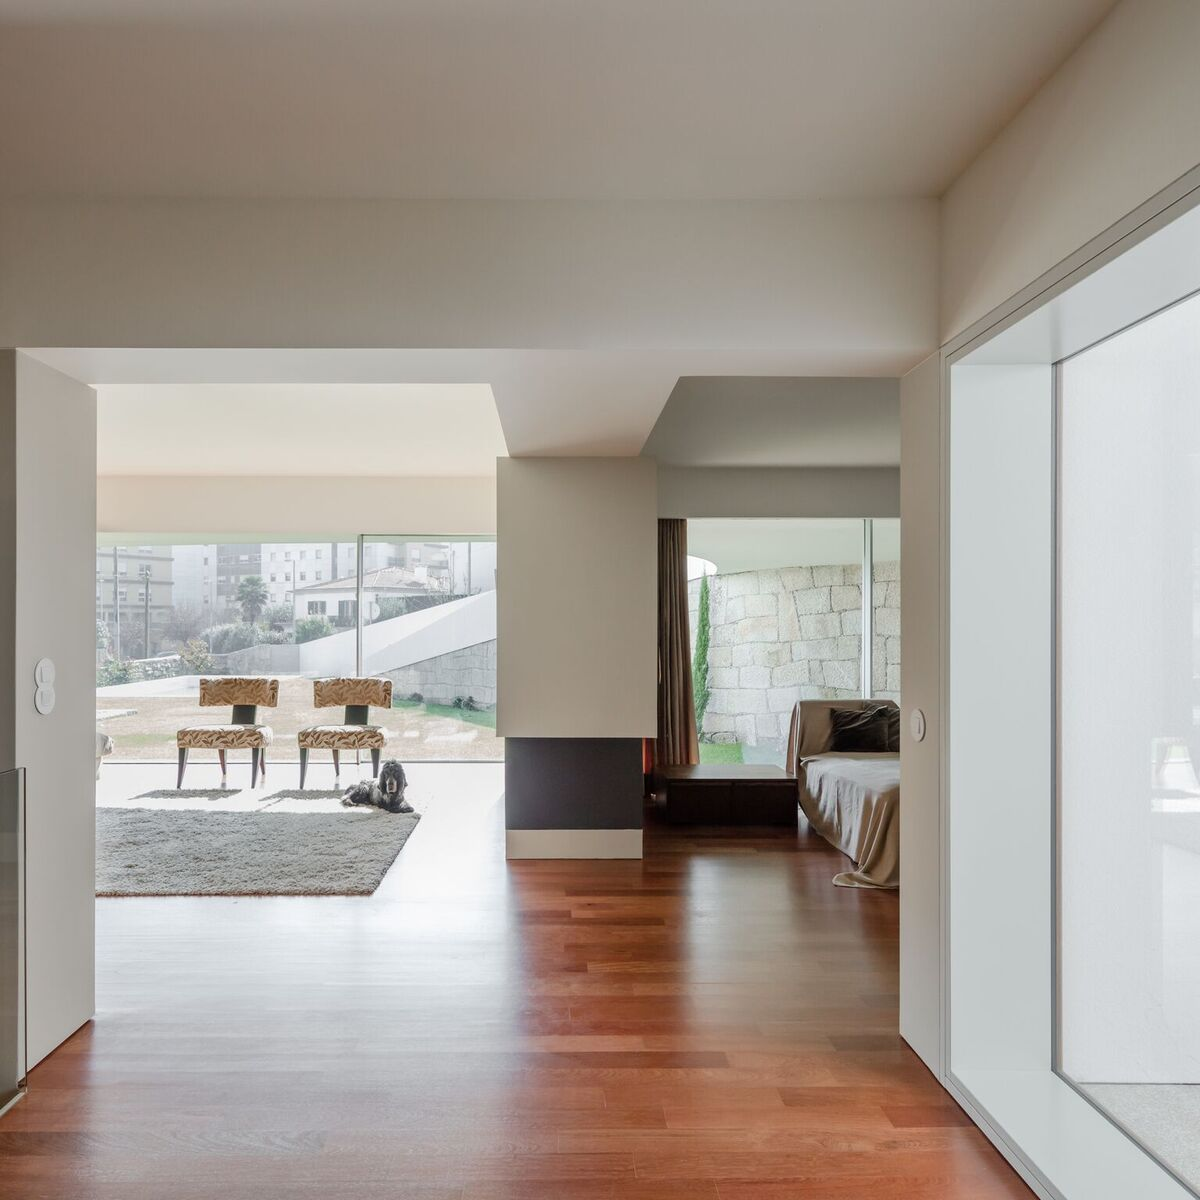 The interior is bright and open which is expected considering the exterior design of this modern home